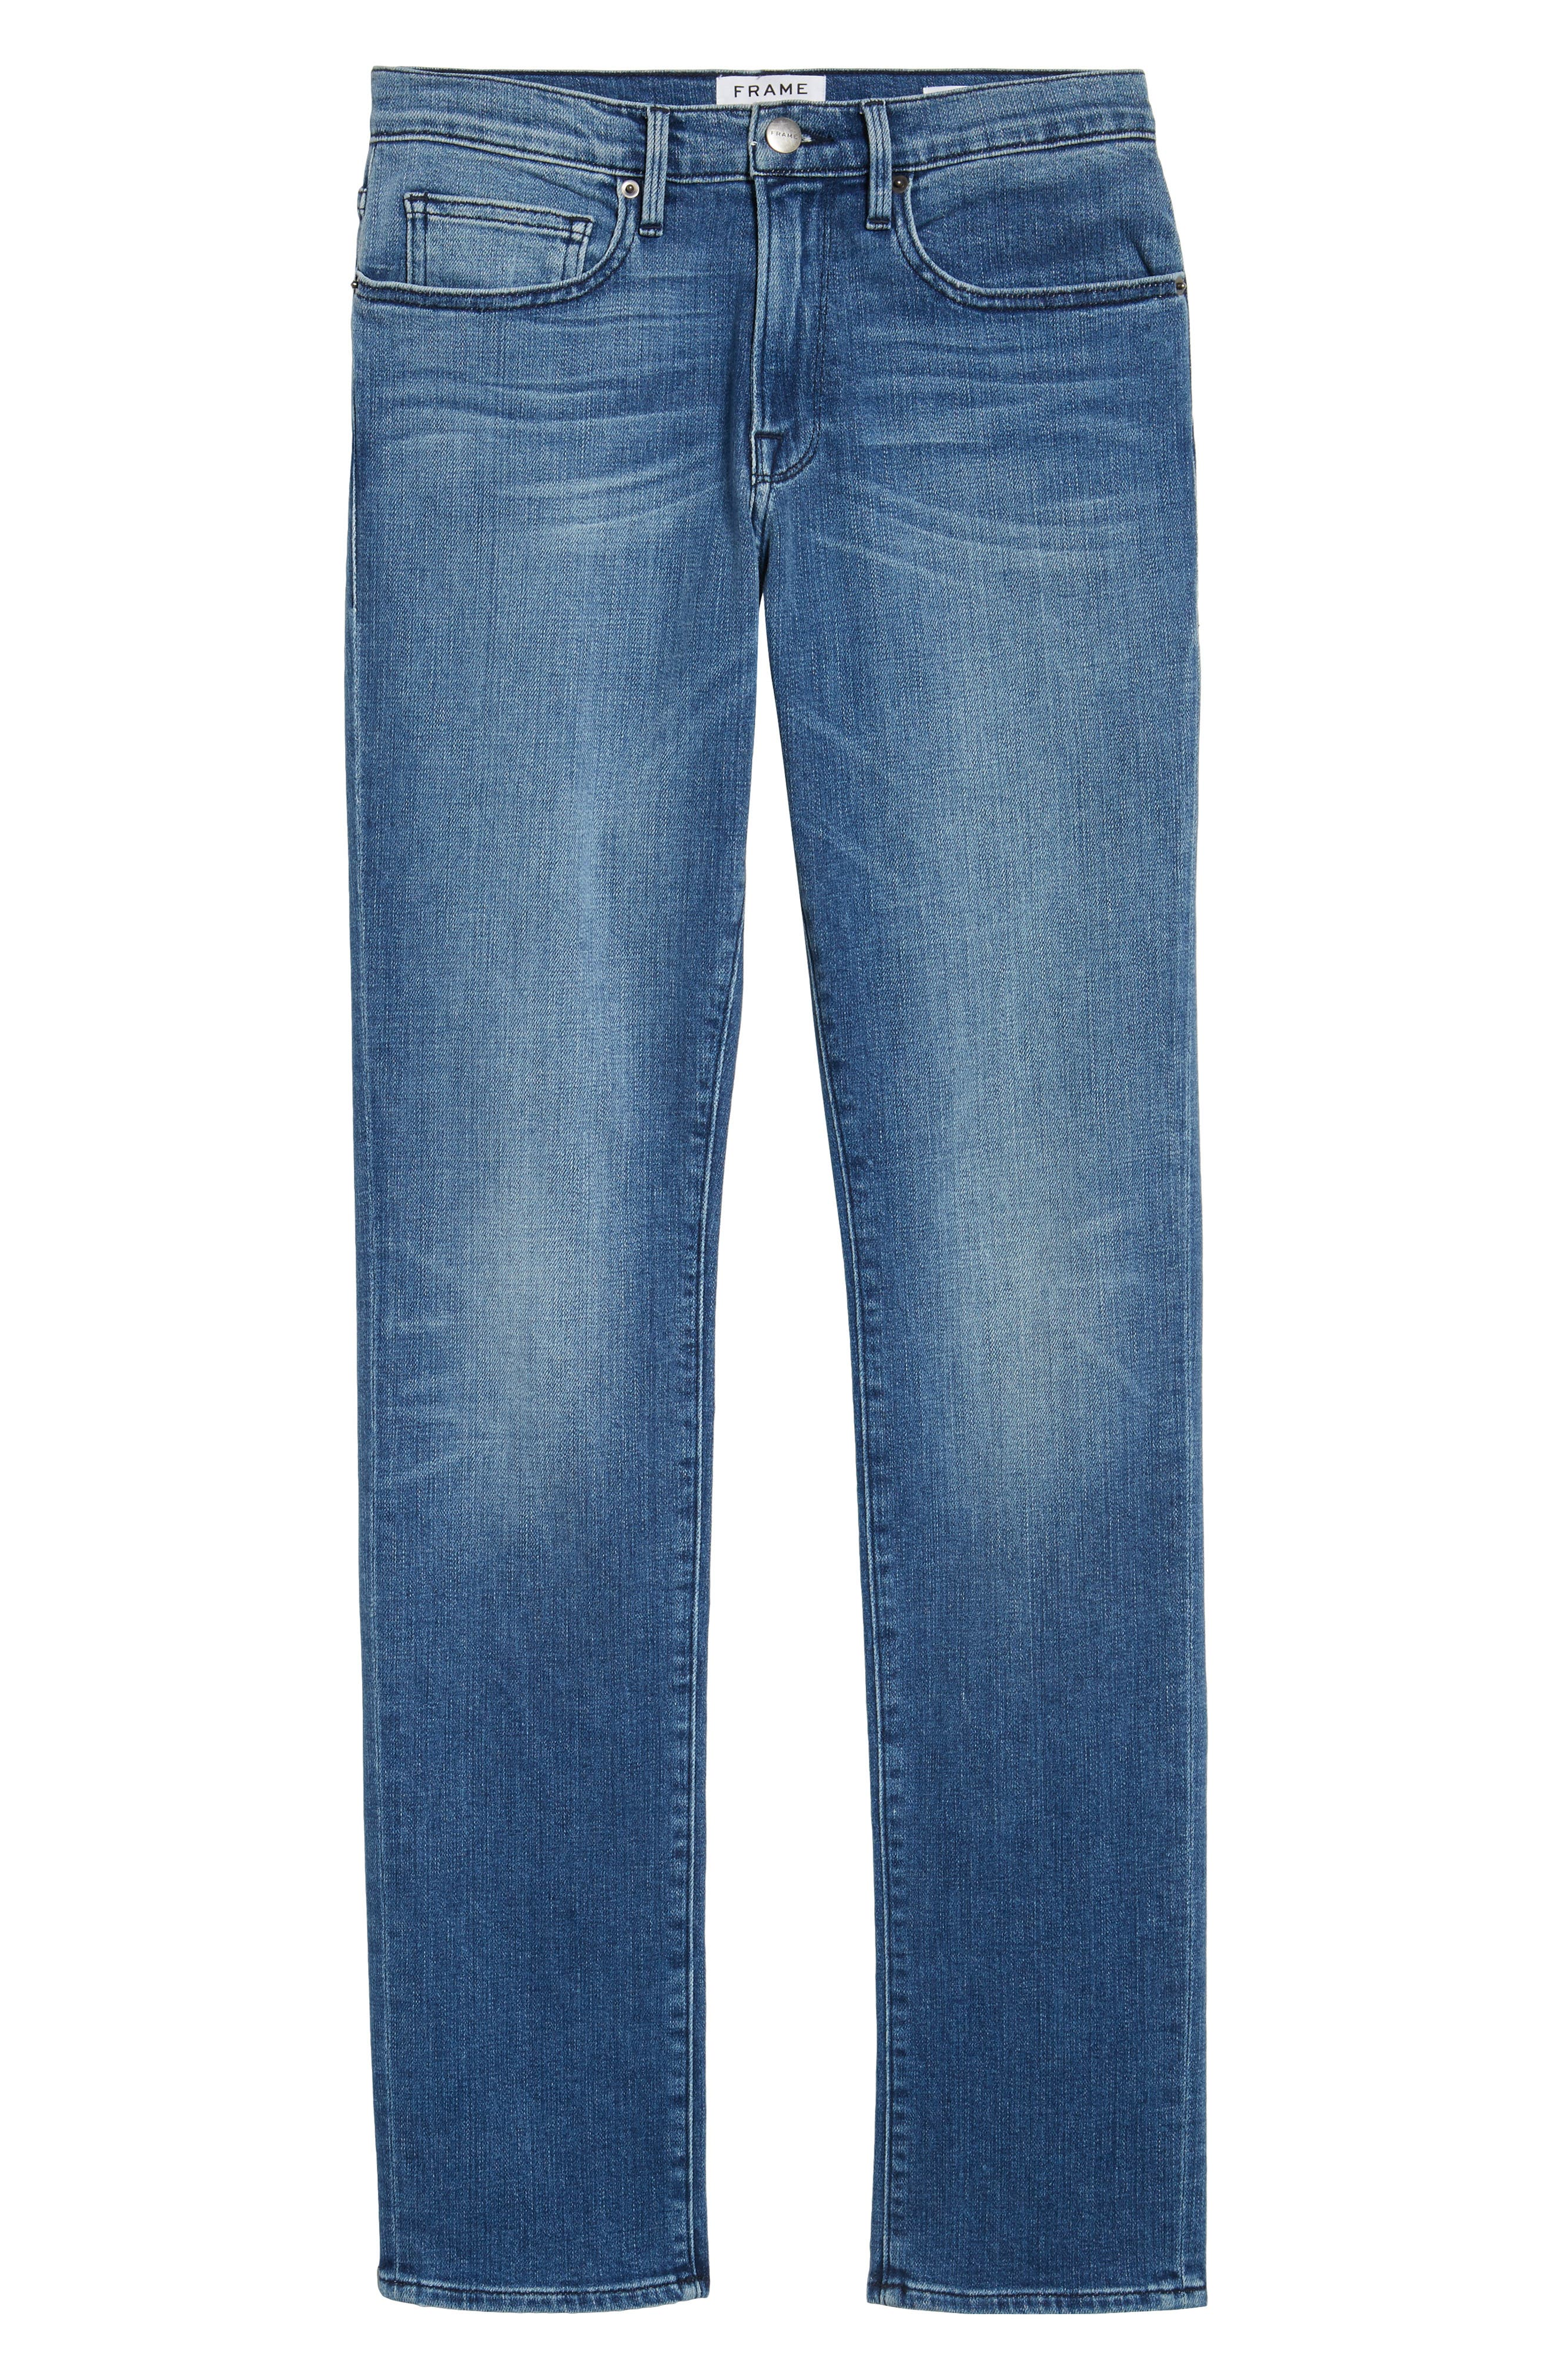 L'Homme Slim Fit Jeans,                             Alternate thumbnail 6, color,                             BRADBURY